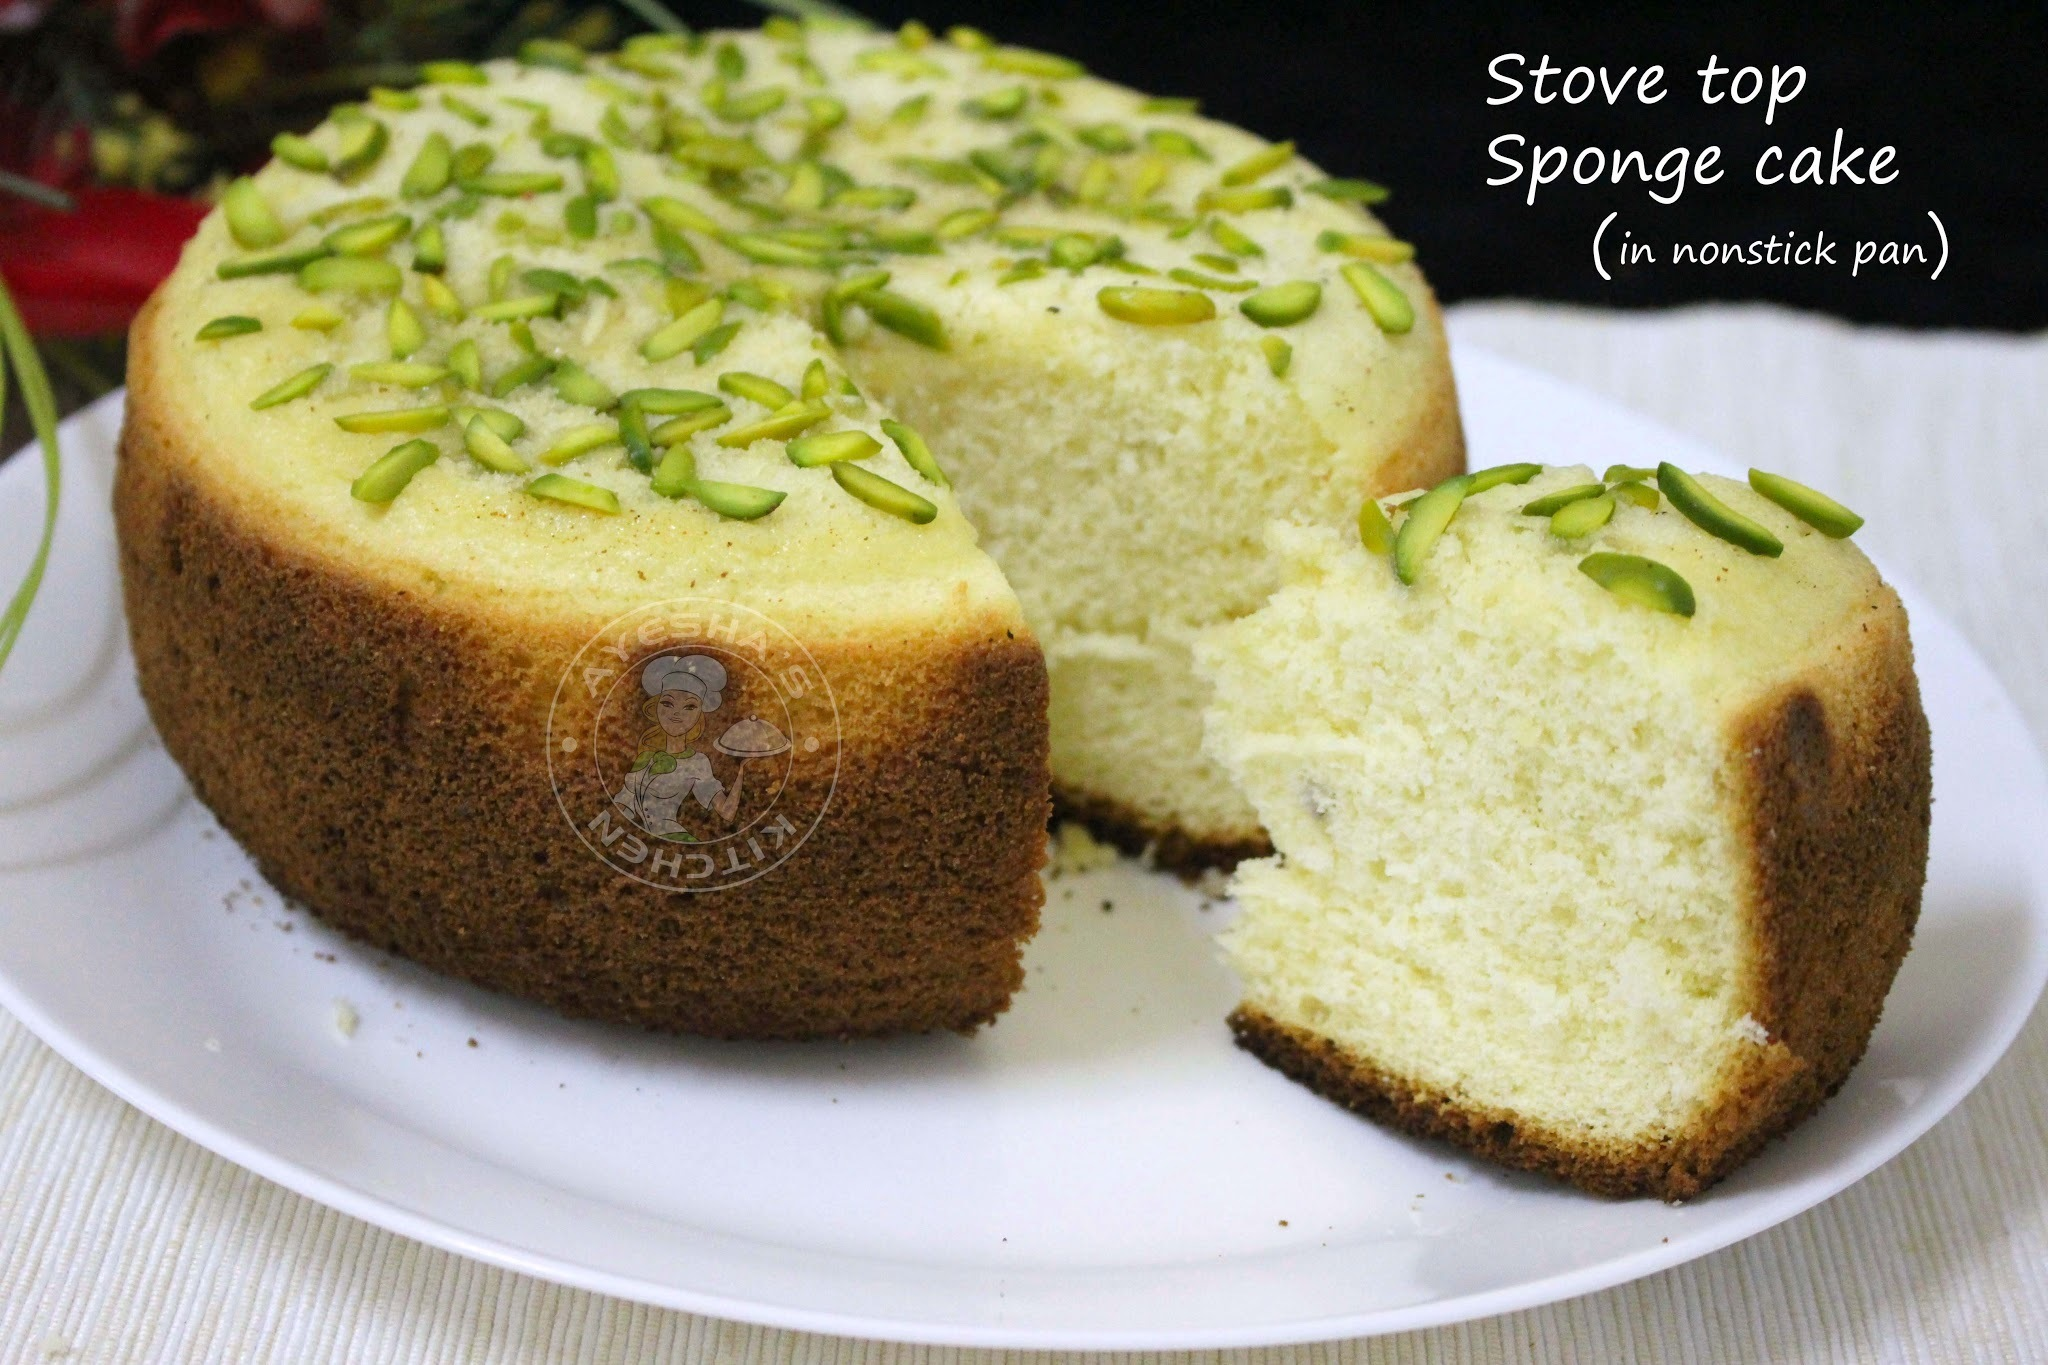 SPONGE CAKE ON STOVE TOP - No baking powder, no baking soda, no vanilla, no butter